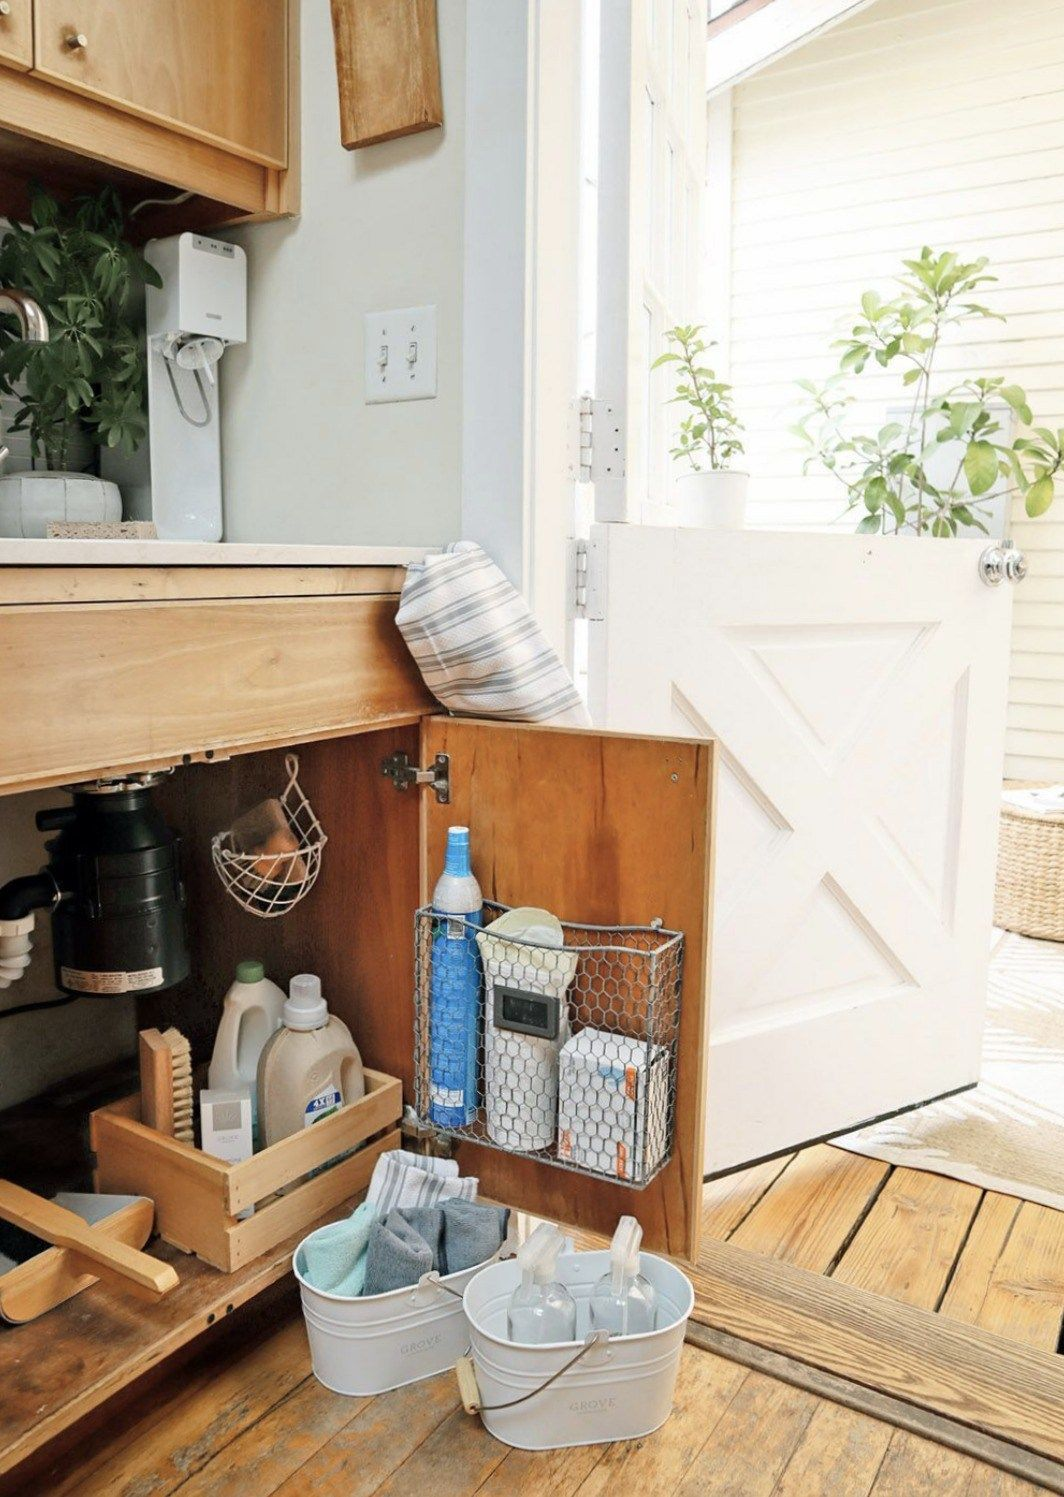 Small Space Organization Small Space Living Feature Tiny Canal Cottage The Cook Stops